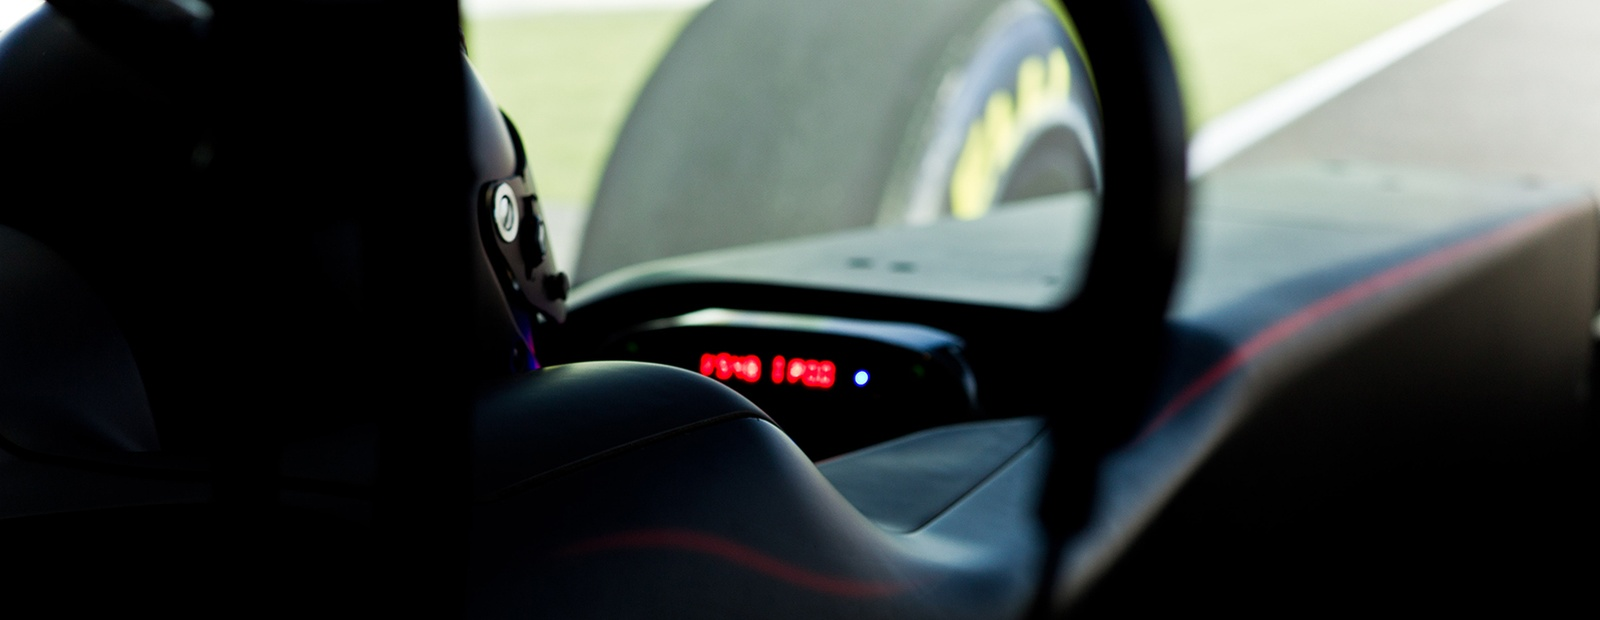 7 TIPS TO TURN YOU FROM WORLD'S FASTEST GAMER CONTESTANT TO McLAREN SIM DRIVER